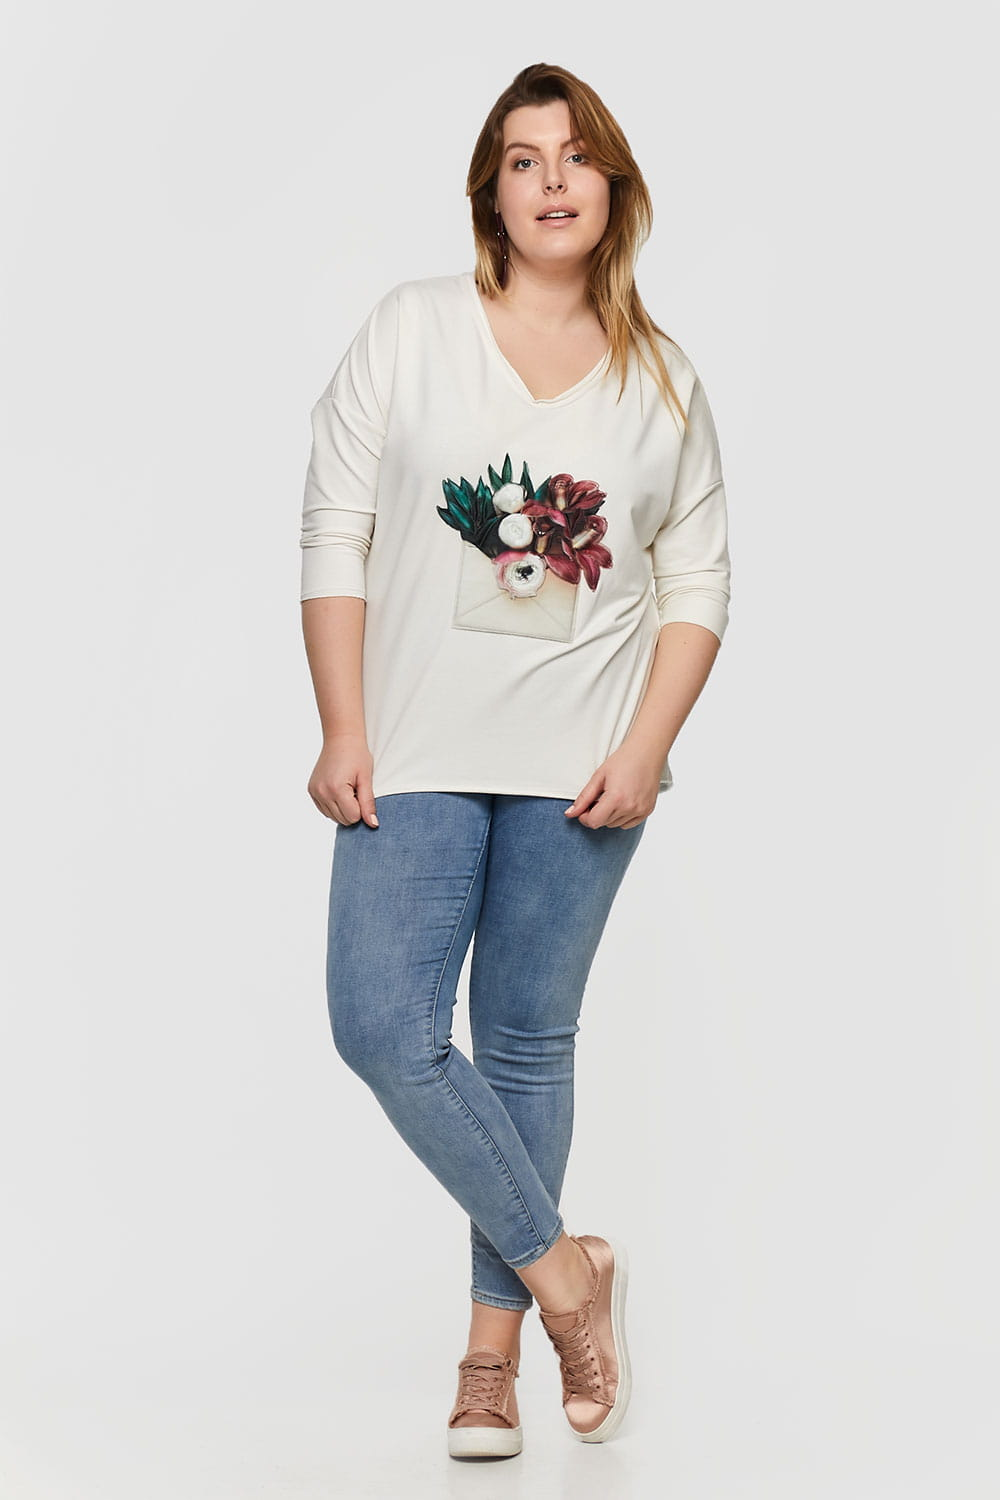 T-shirt Emeraldo 2 Plus Size Ekri 3.jpg